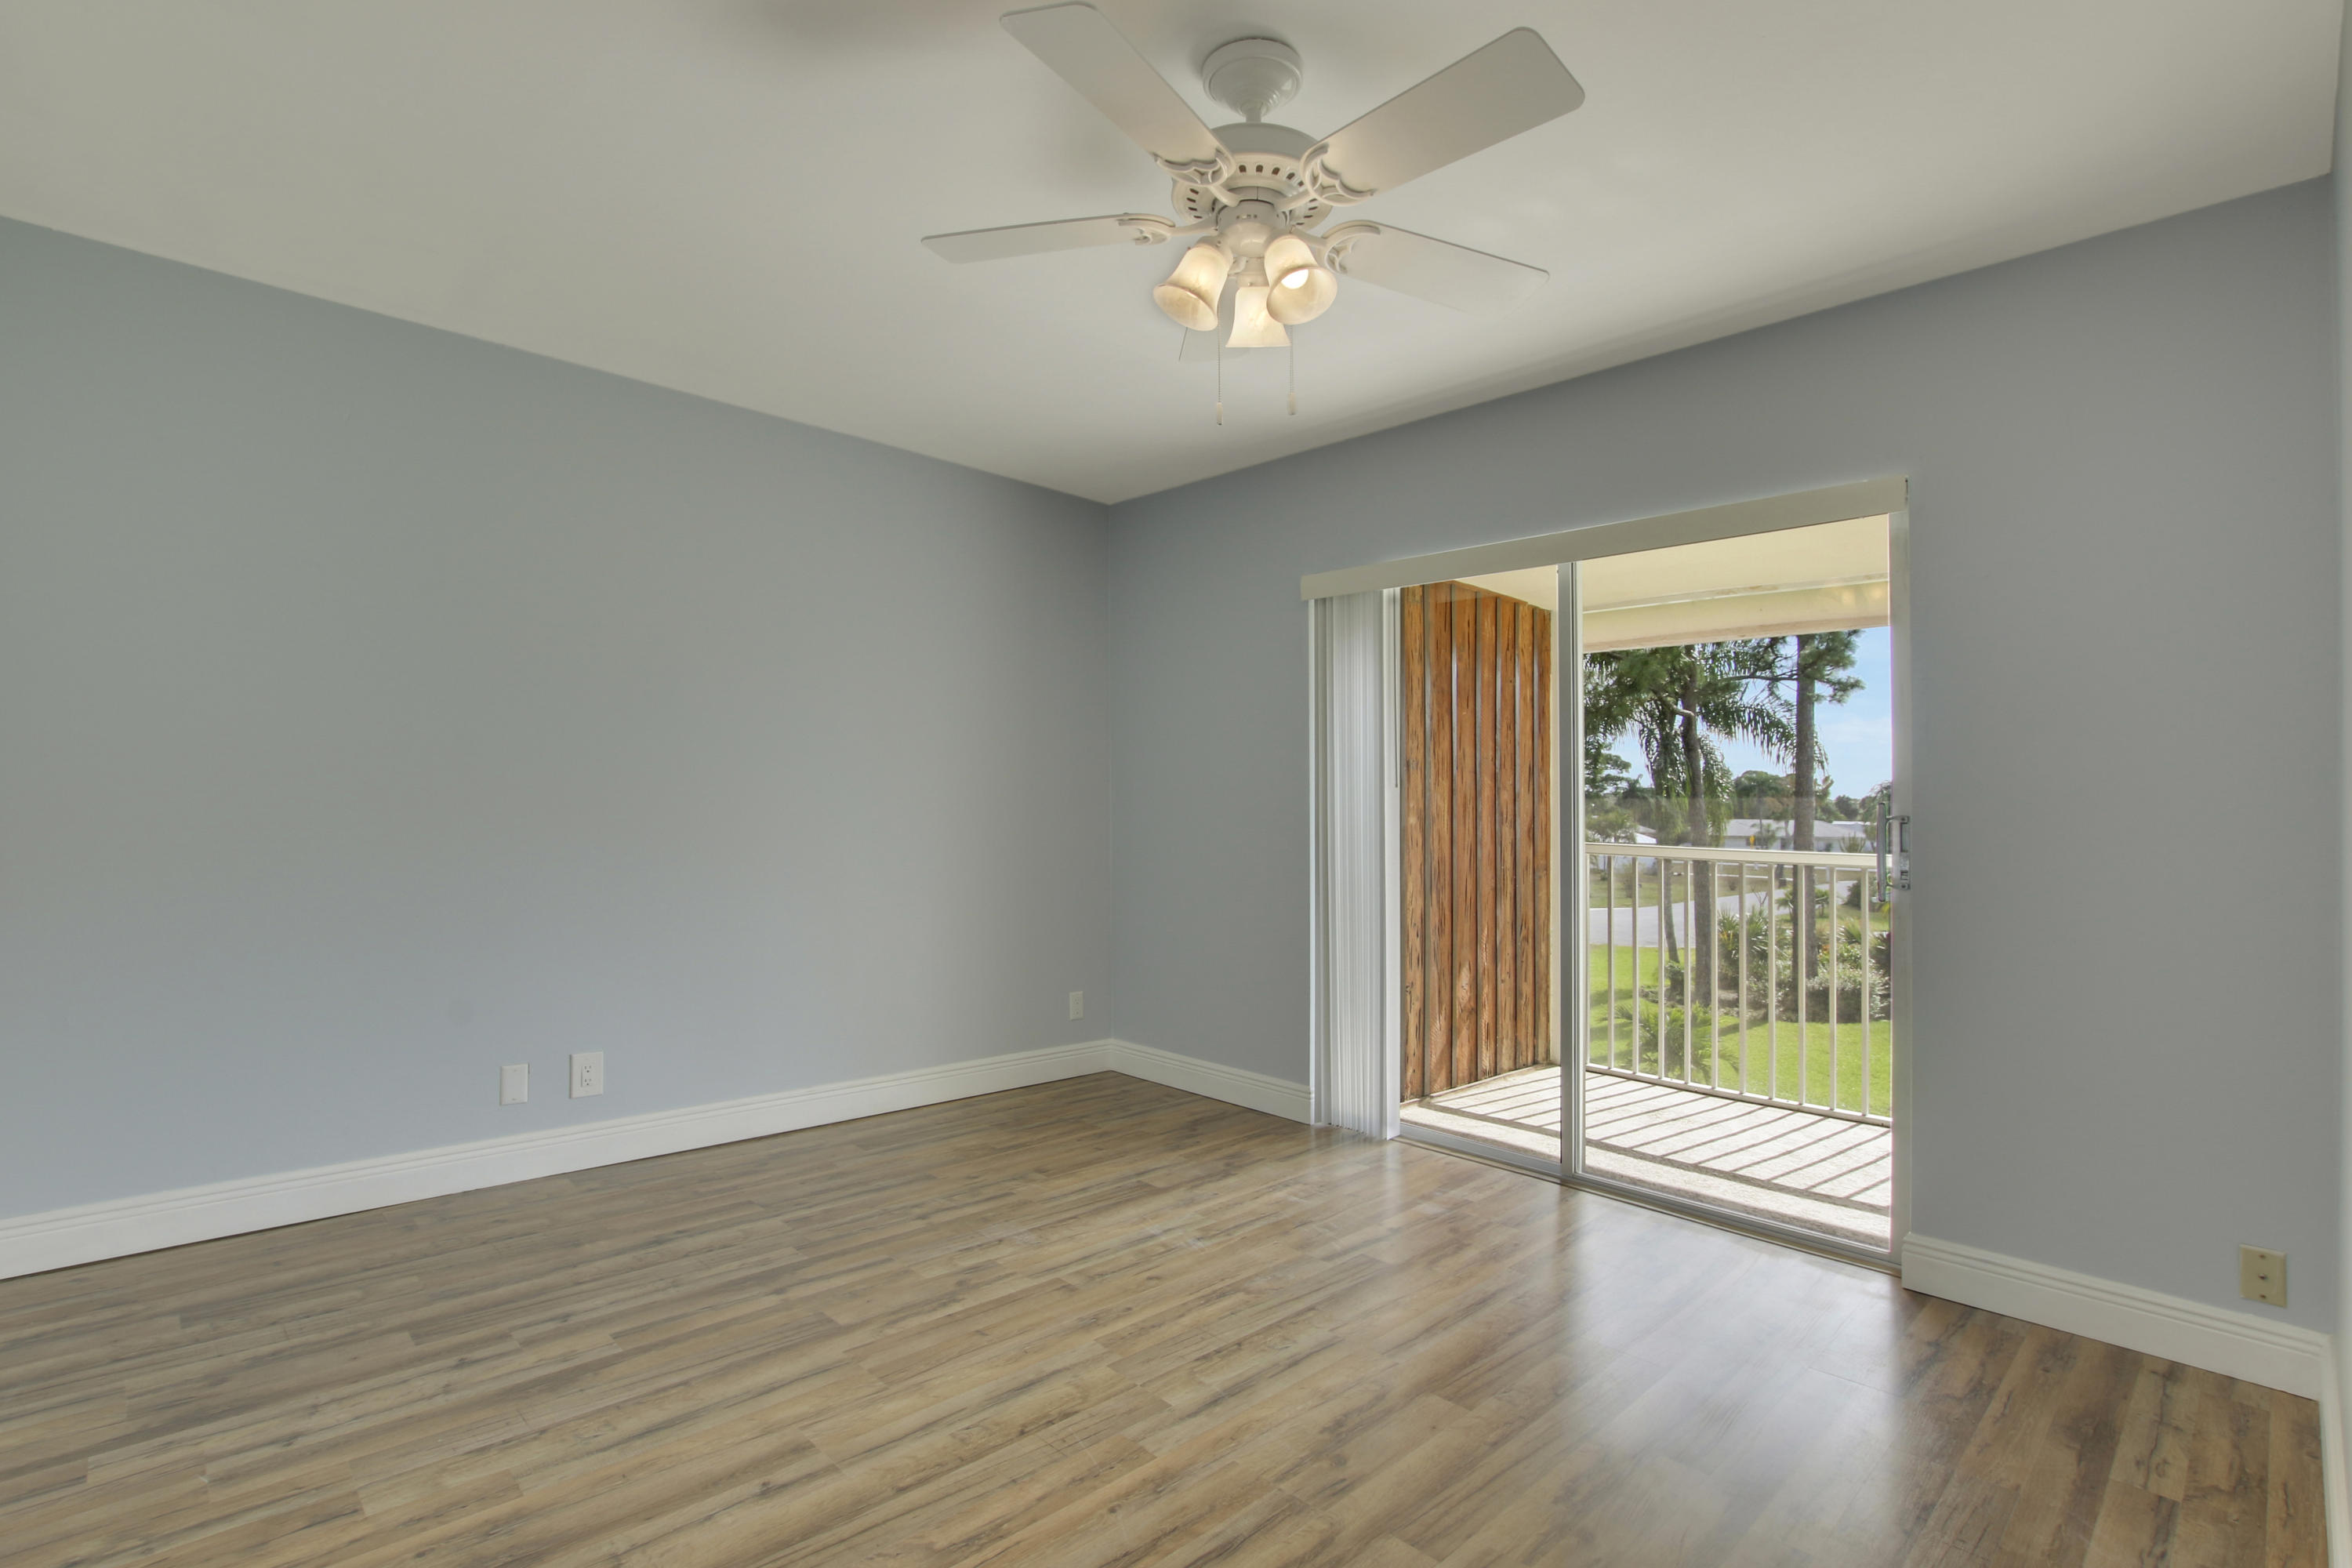 18081 Country Club Drive 17, Tequesta, Florida 33469, 2 Bedrooms Bedrooms, ,1 BathroomBathrooms,A,Condominium,Country Club,RX-10496741